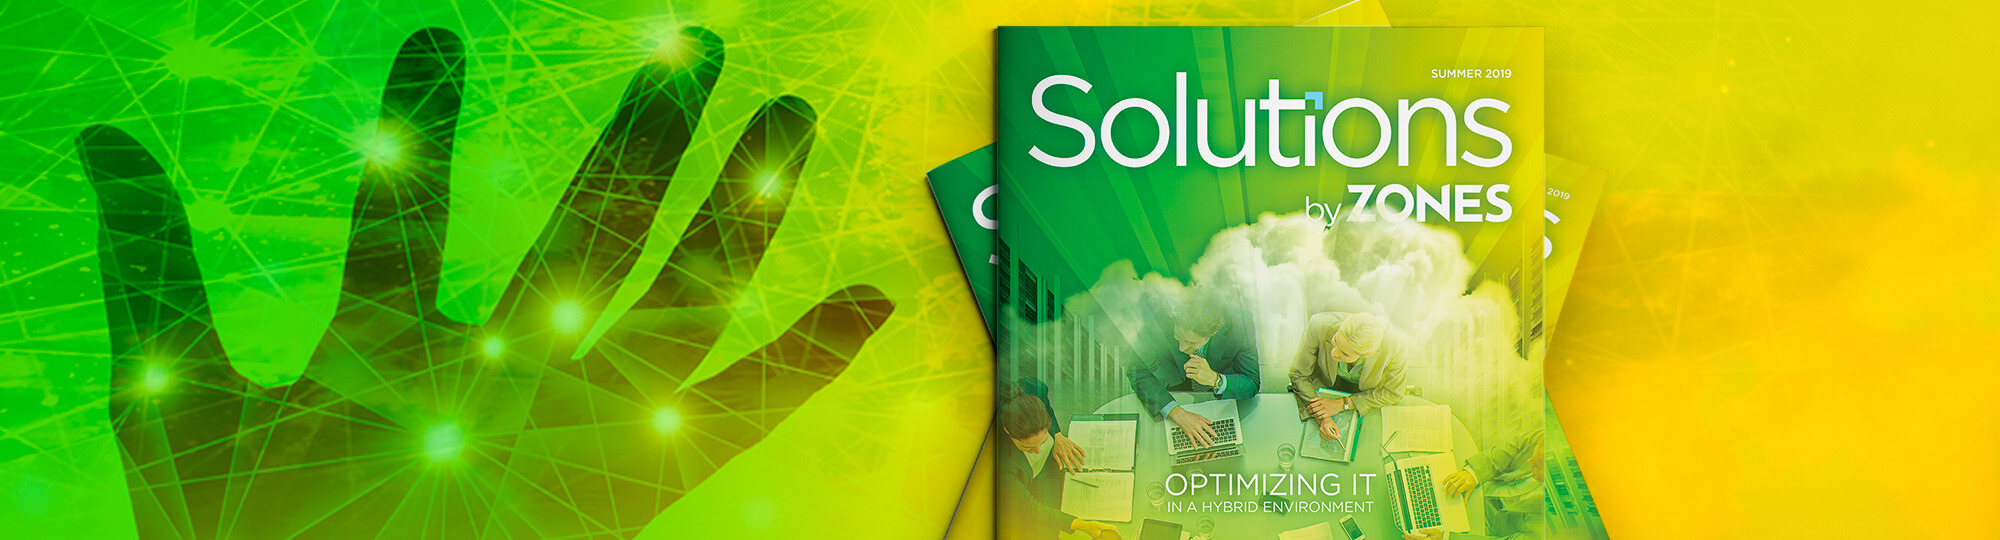 The best of both worlds. Check out the Summer edition of Solutions by Zones to learn how hybrid technology is transforming the way we work.